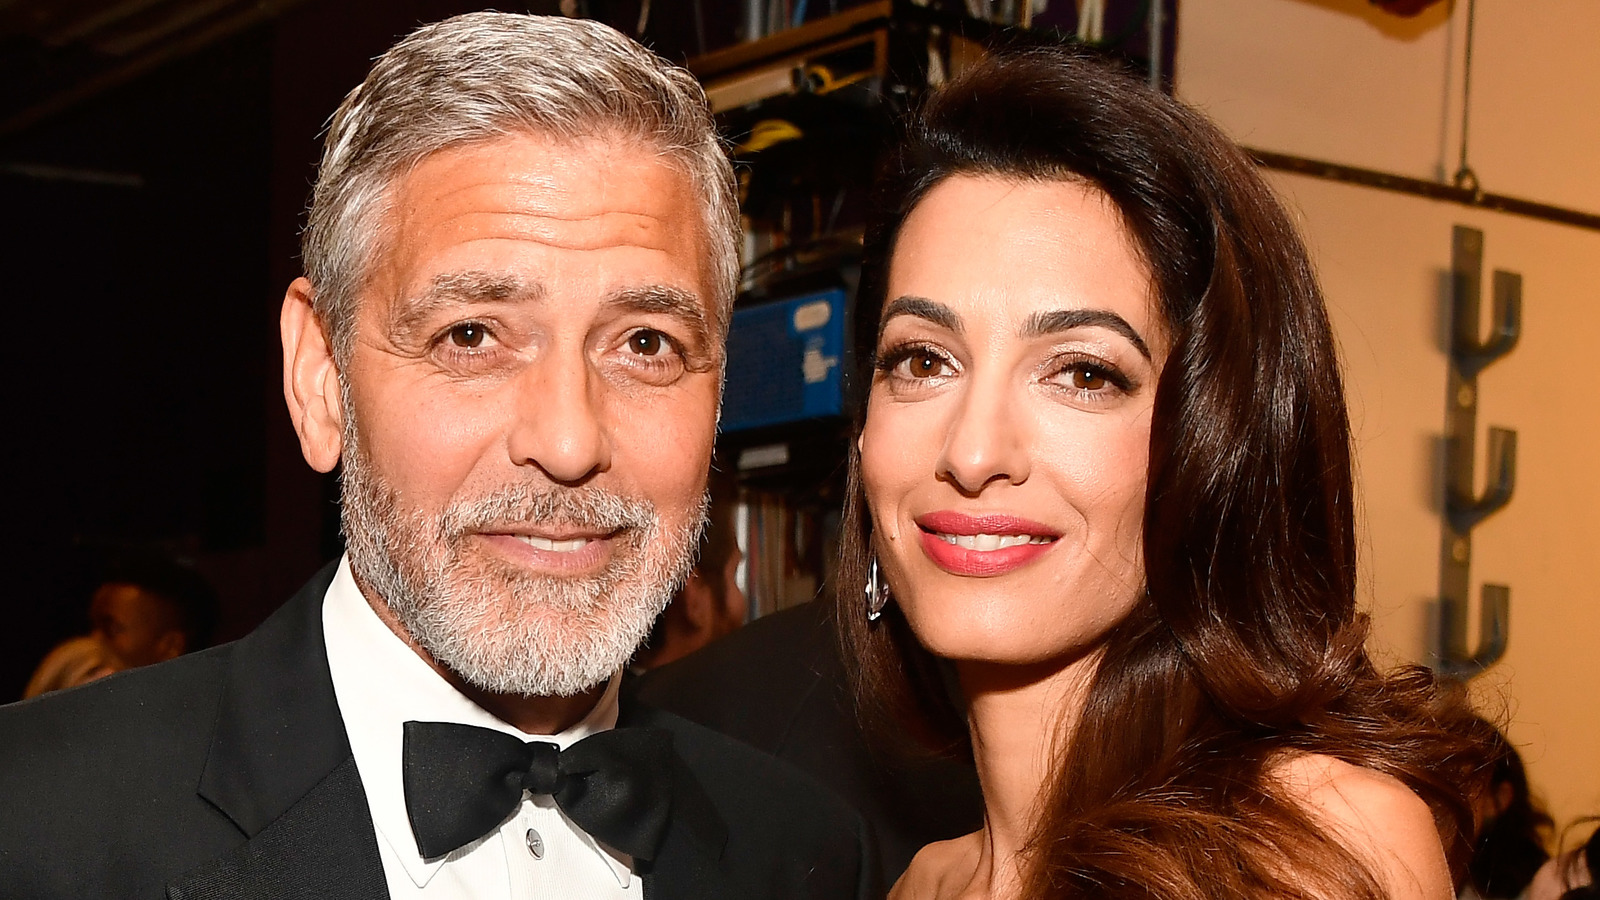 George Clooney reveals which one of his twins is most like Amal